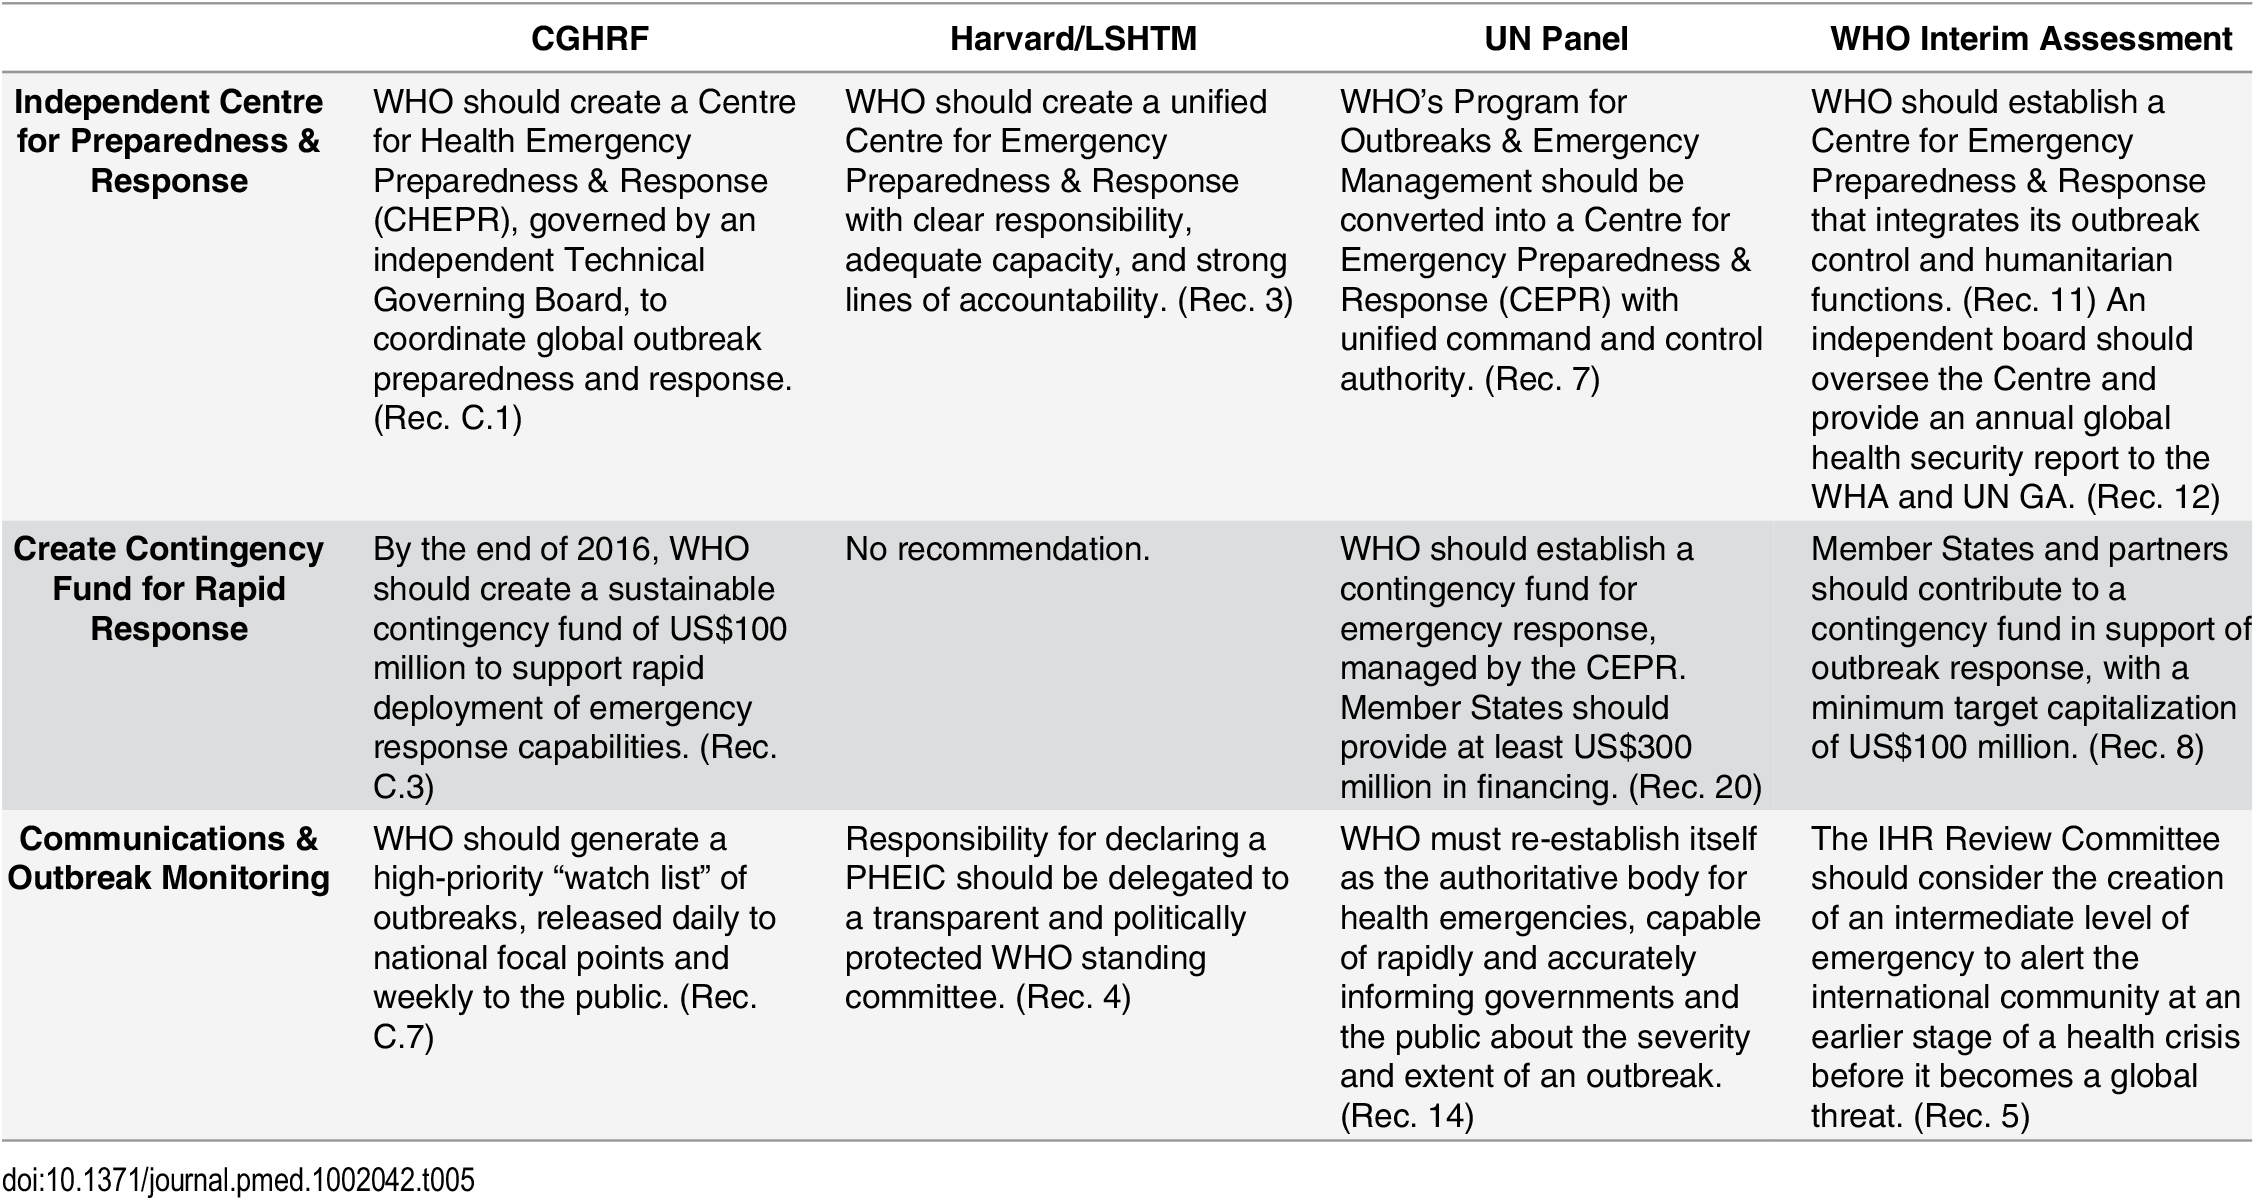 Recommendations from the Four Global Commissions Concerning Global Governance—WHO Emergency Operations and Response Reform.